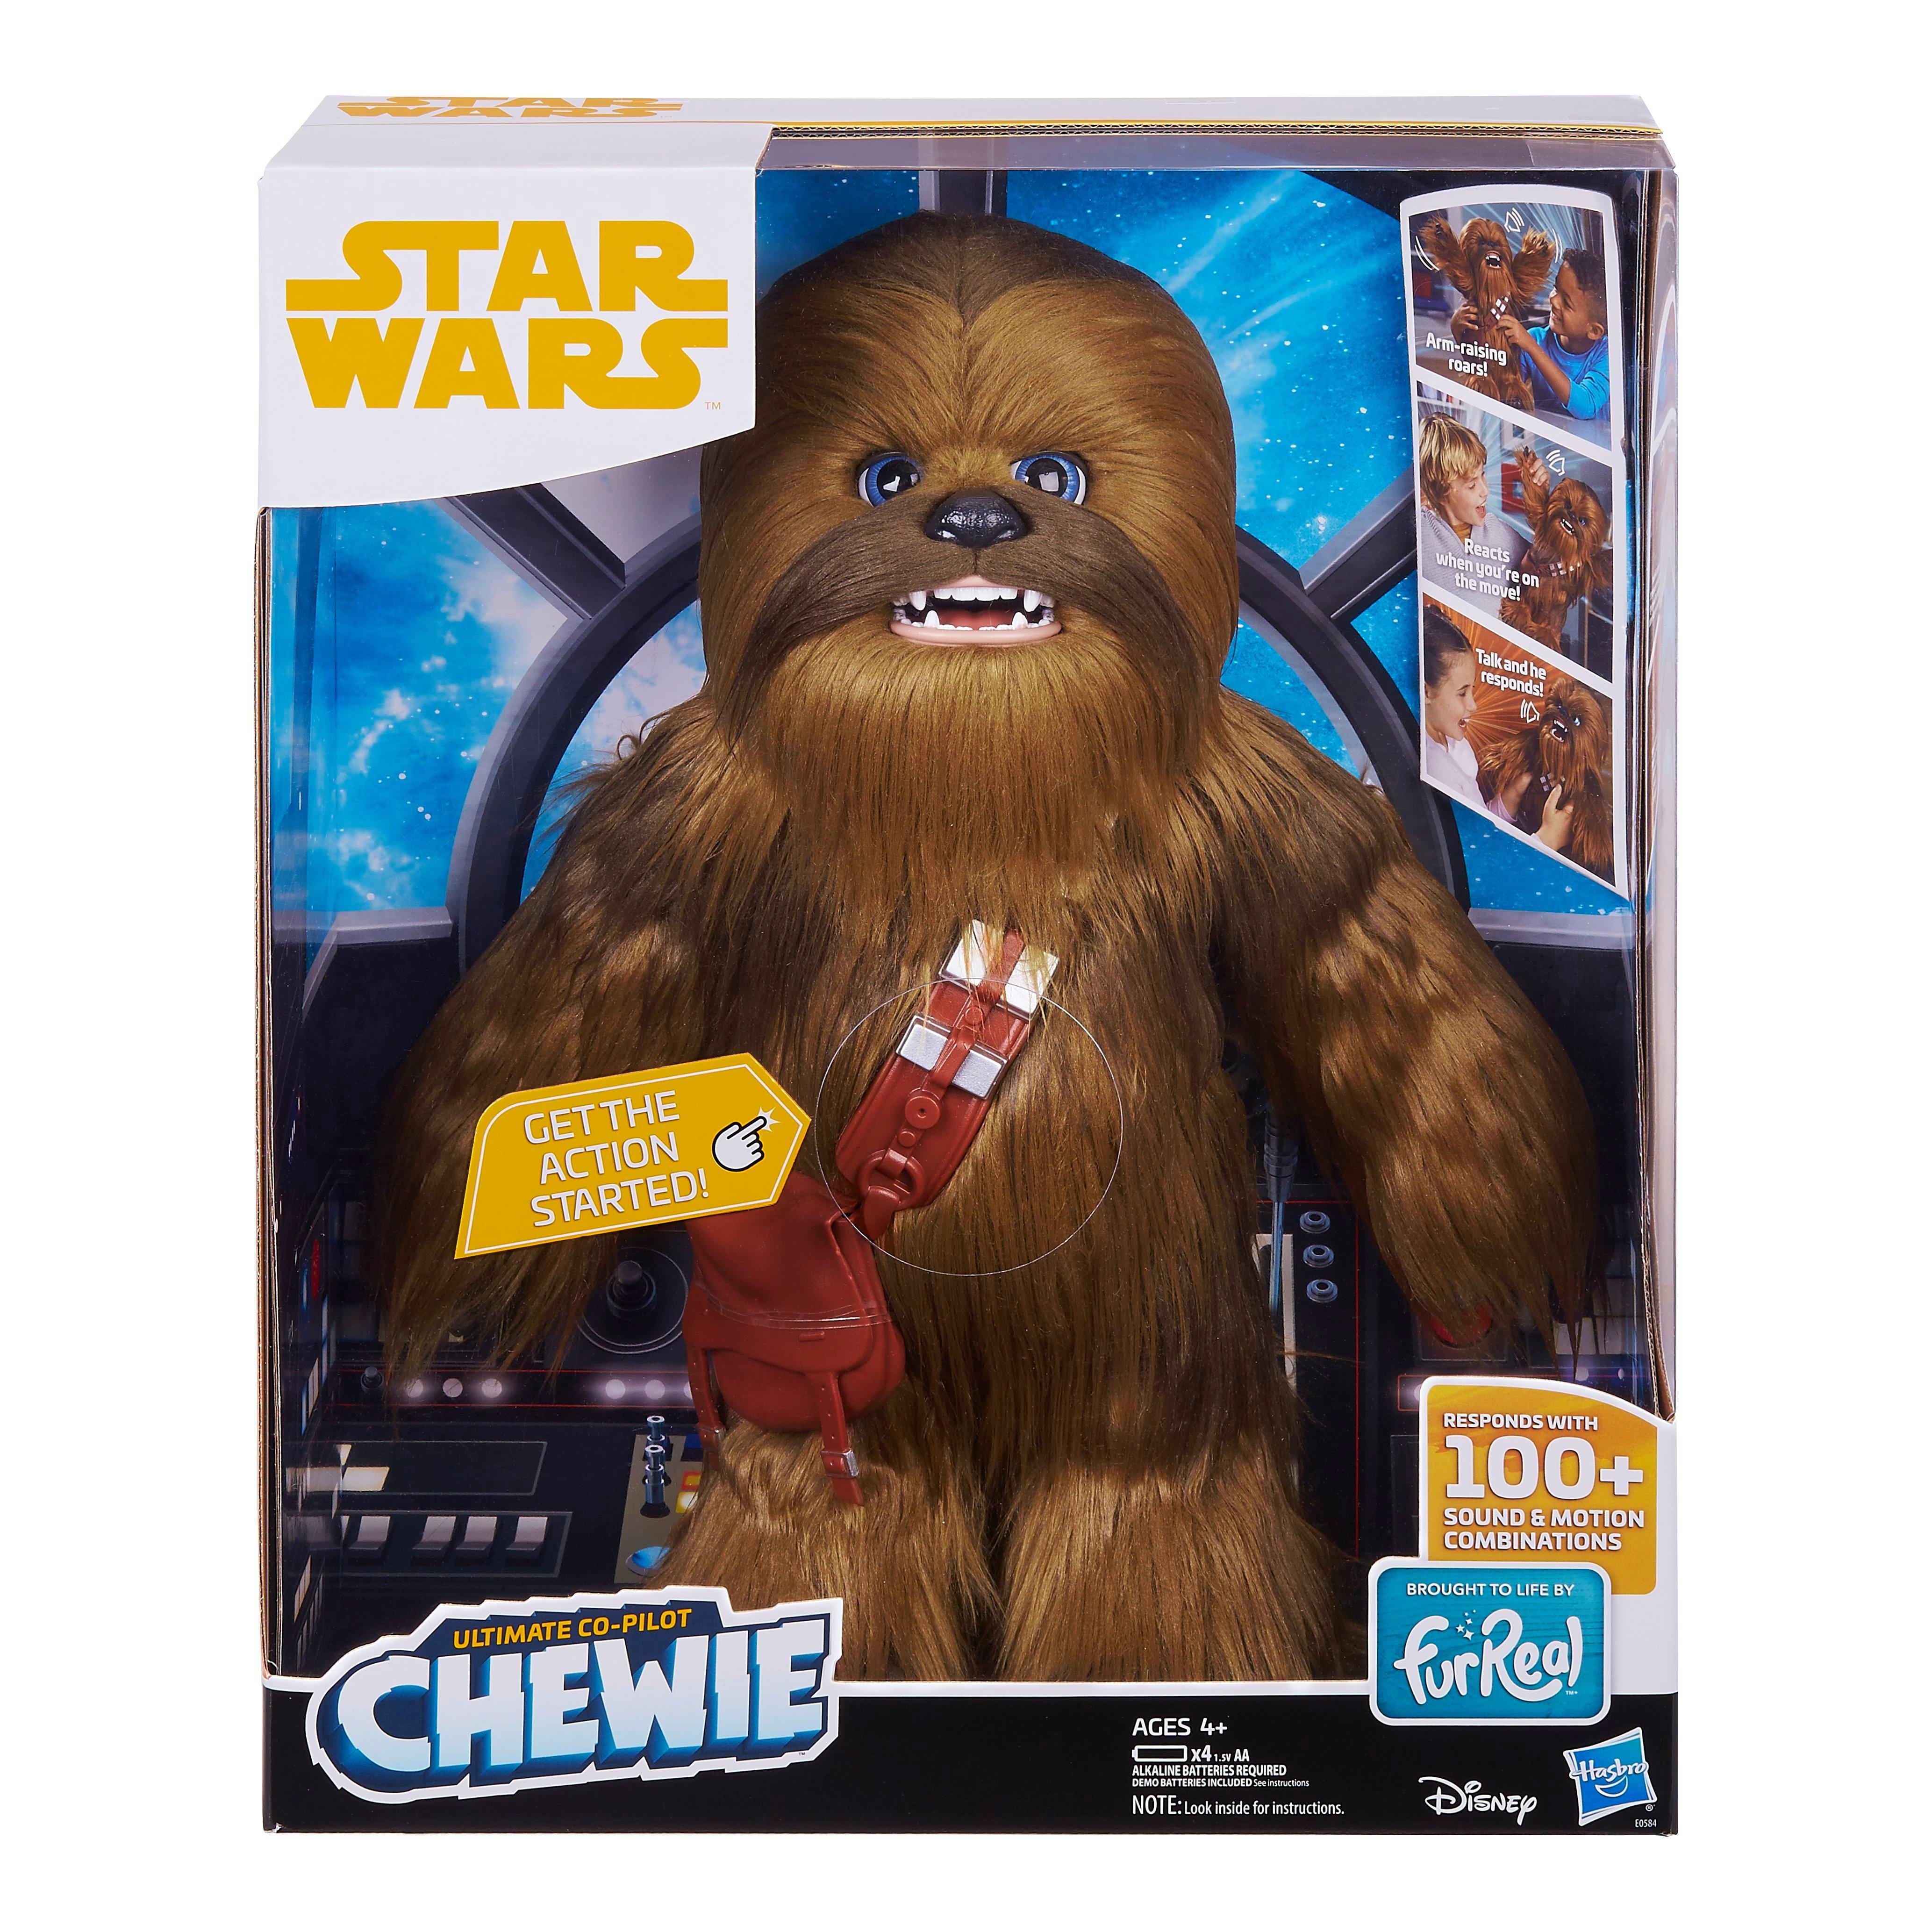 Chewie Star Wars Toy Ultimate Co-pilot